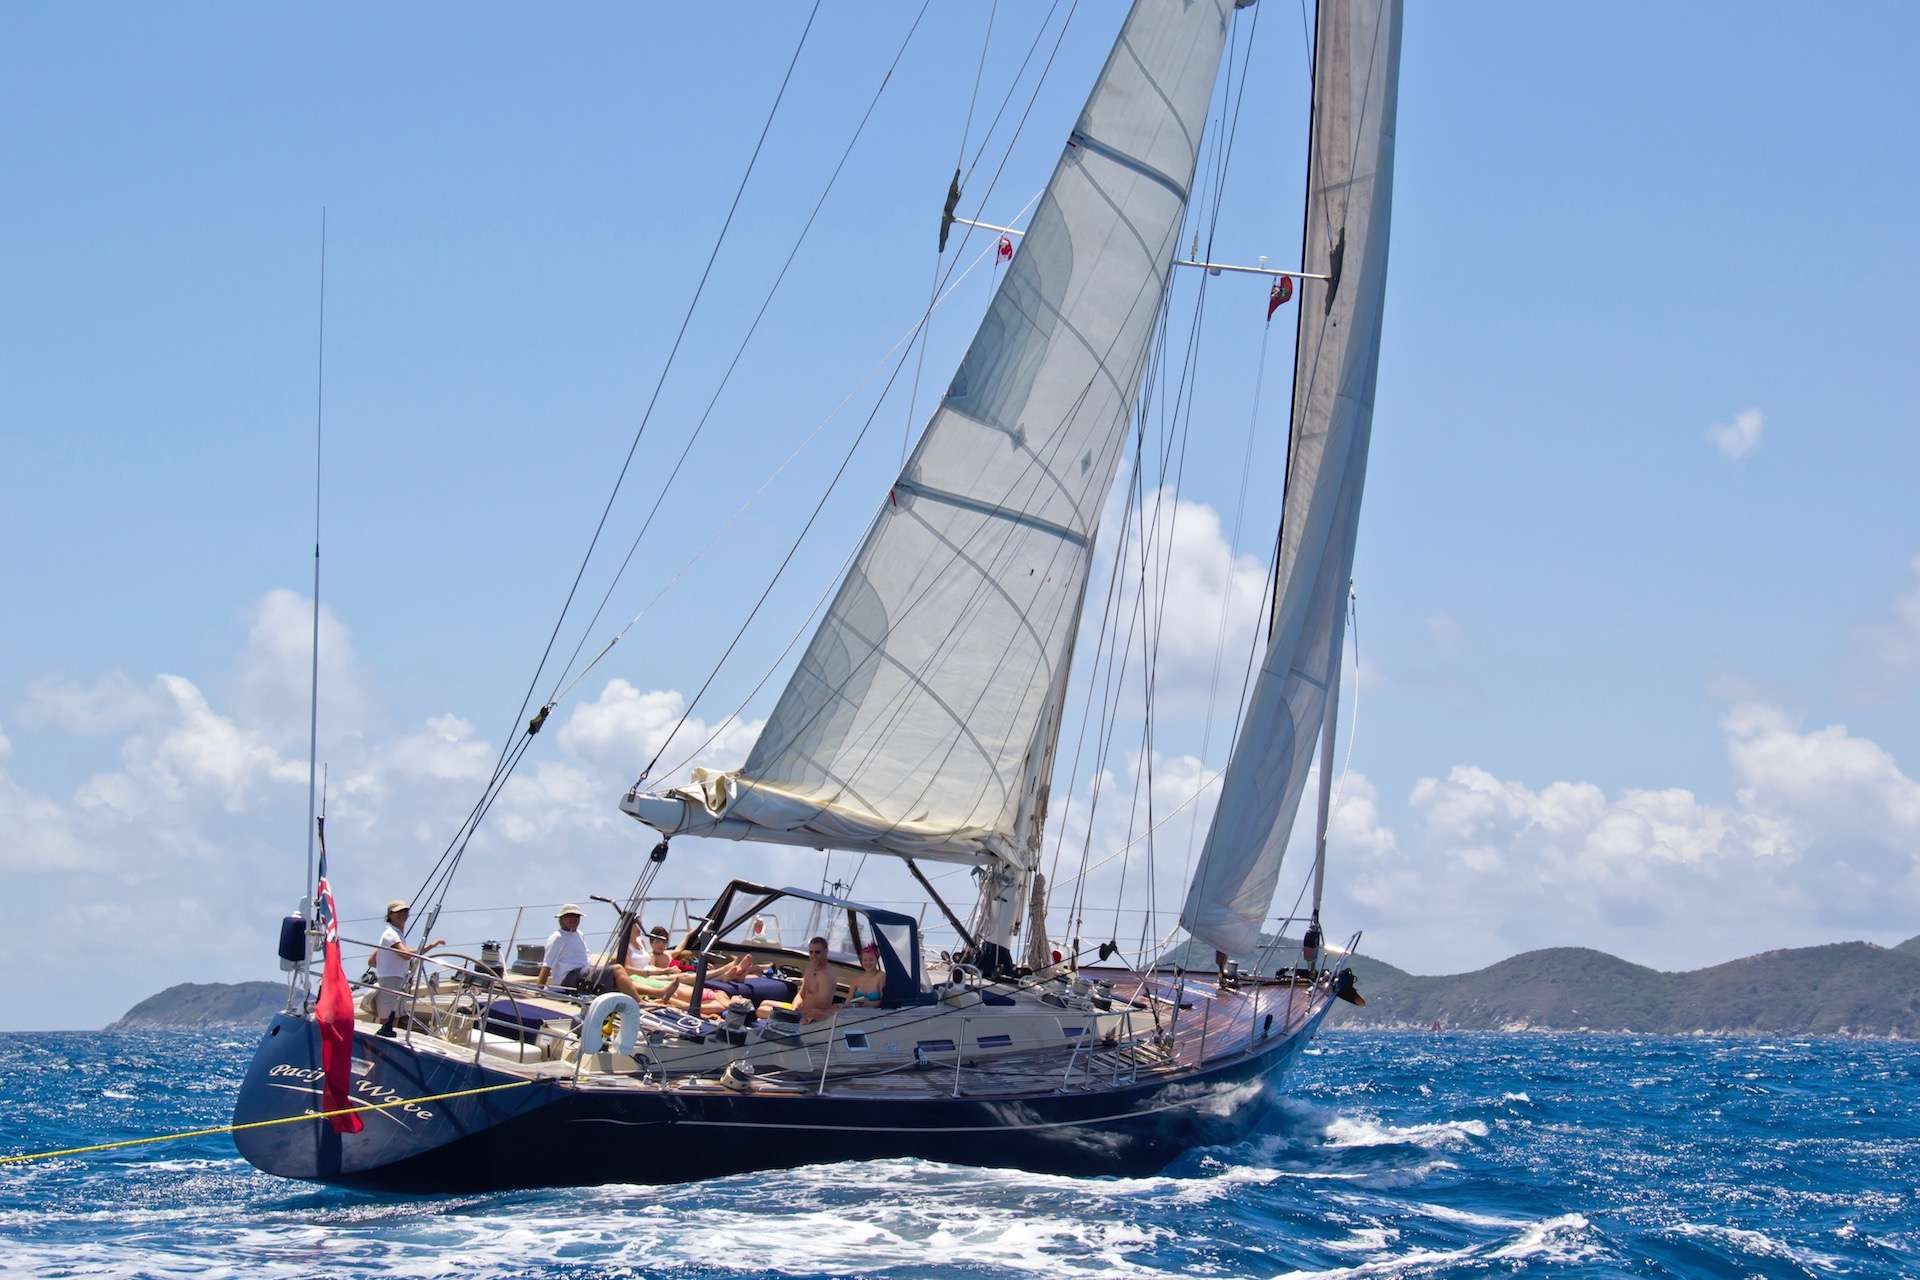 Sail Yacht 'Sail', 6 PAX, 2 Crew, 72.00 Ft, 21.00 Meters, Built 1986, Giorgetti & Magrini/Yacht Officine Pesaro SRL, Refit Year Full Refit 2015